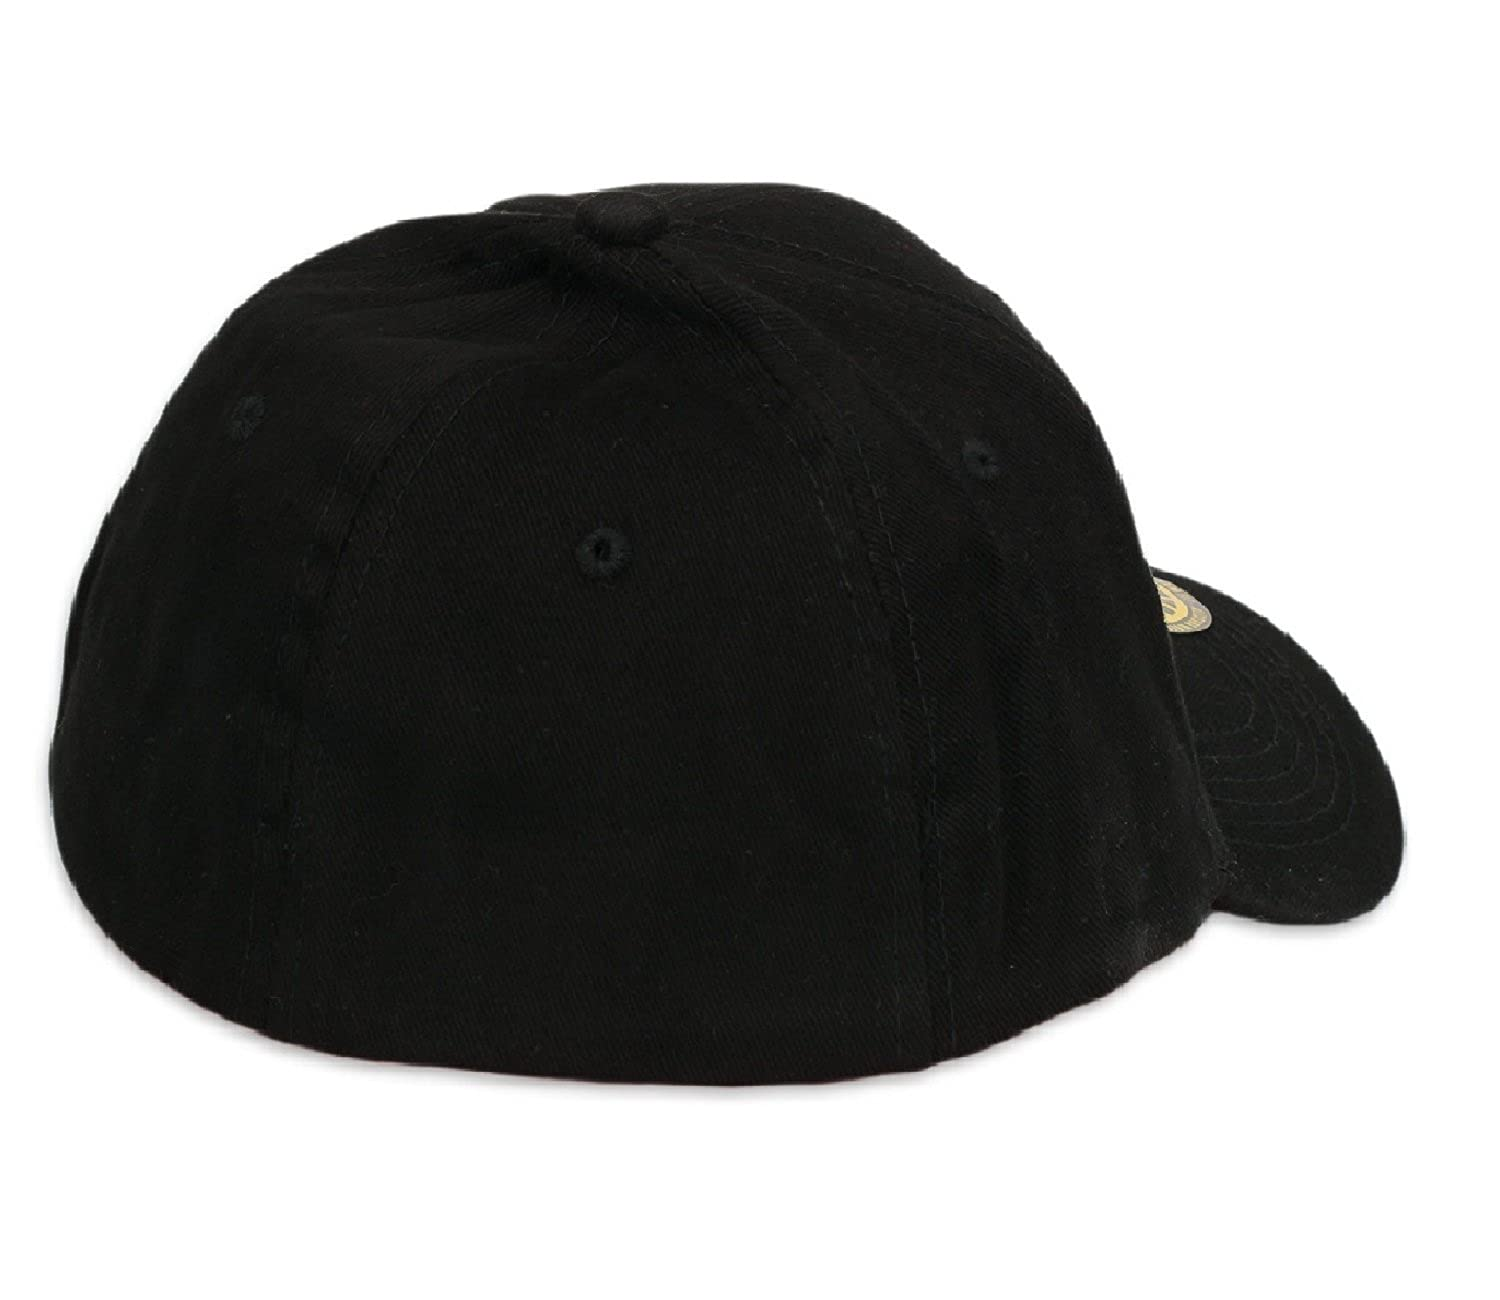 03a43d670fd New Baseball Snap Back Cap Gothic Letter A-Z Embroidered UK Trucker Hat  Caps Snapback (A)  Amazon.co.uk  Clothing